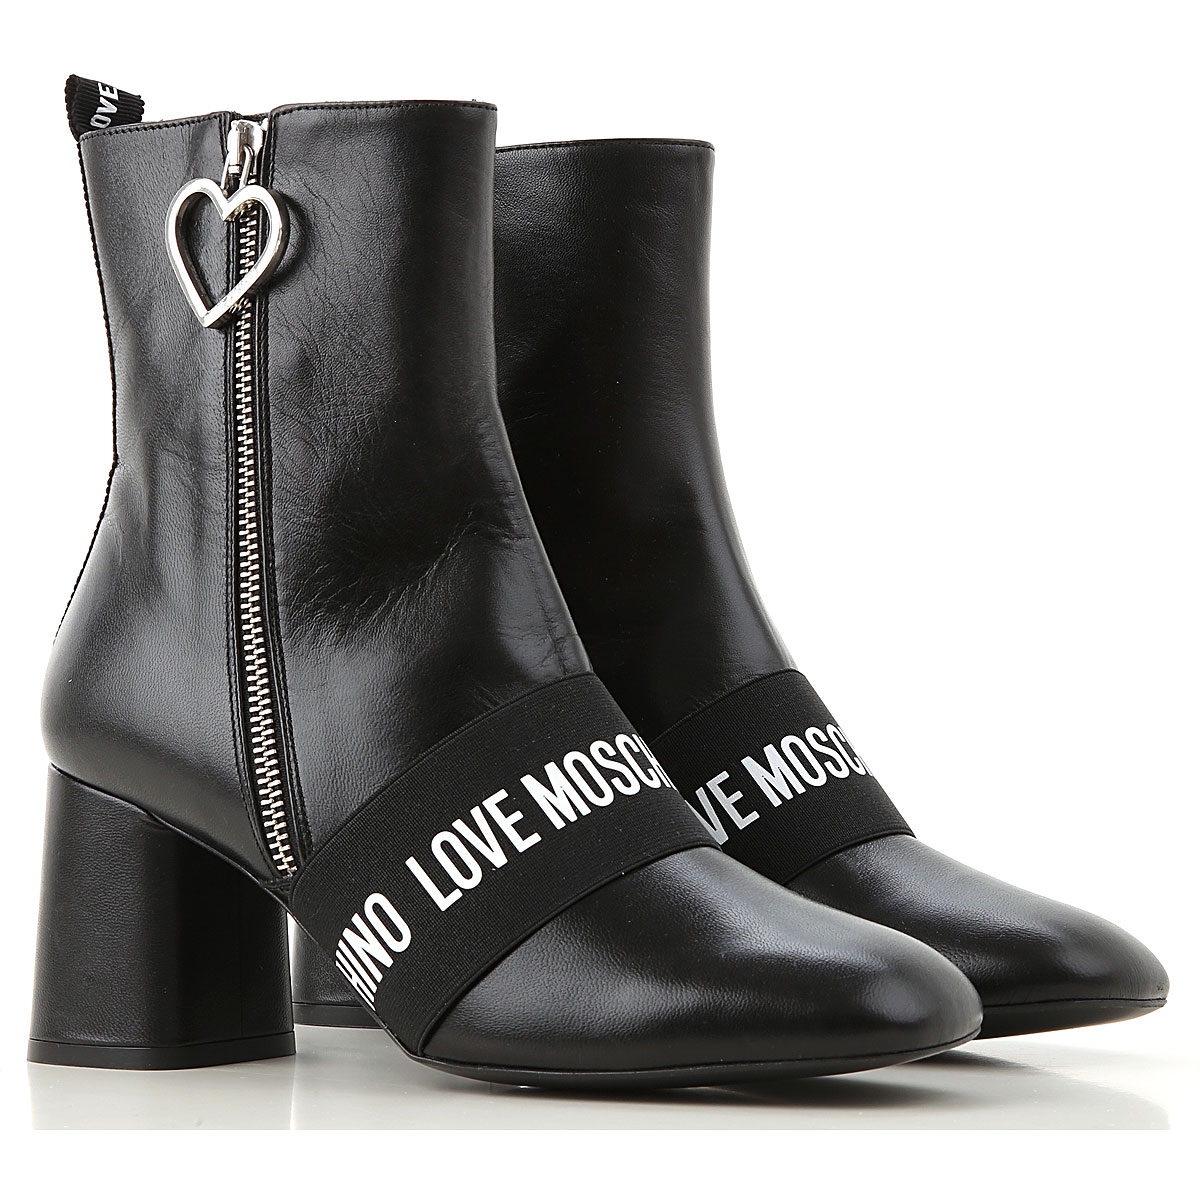 Moschino Boots for Women Booties SE - GOOFASH